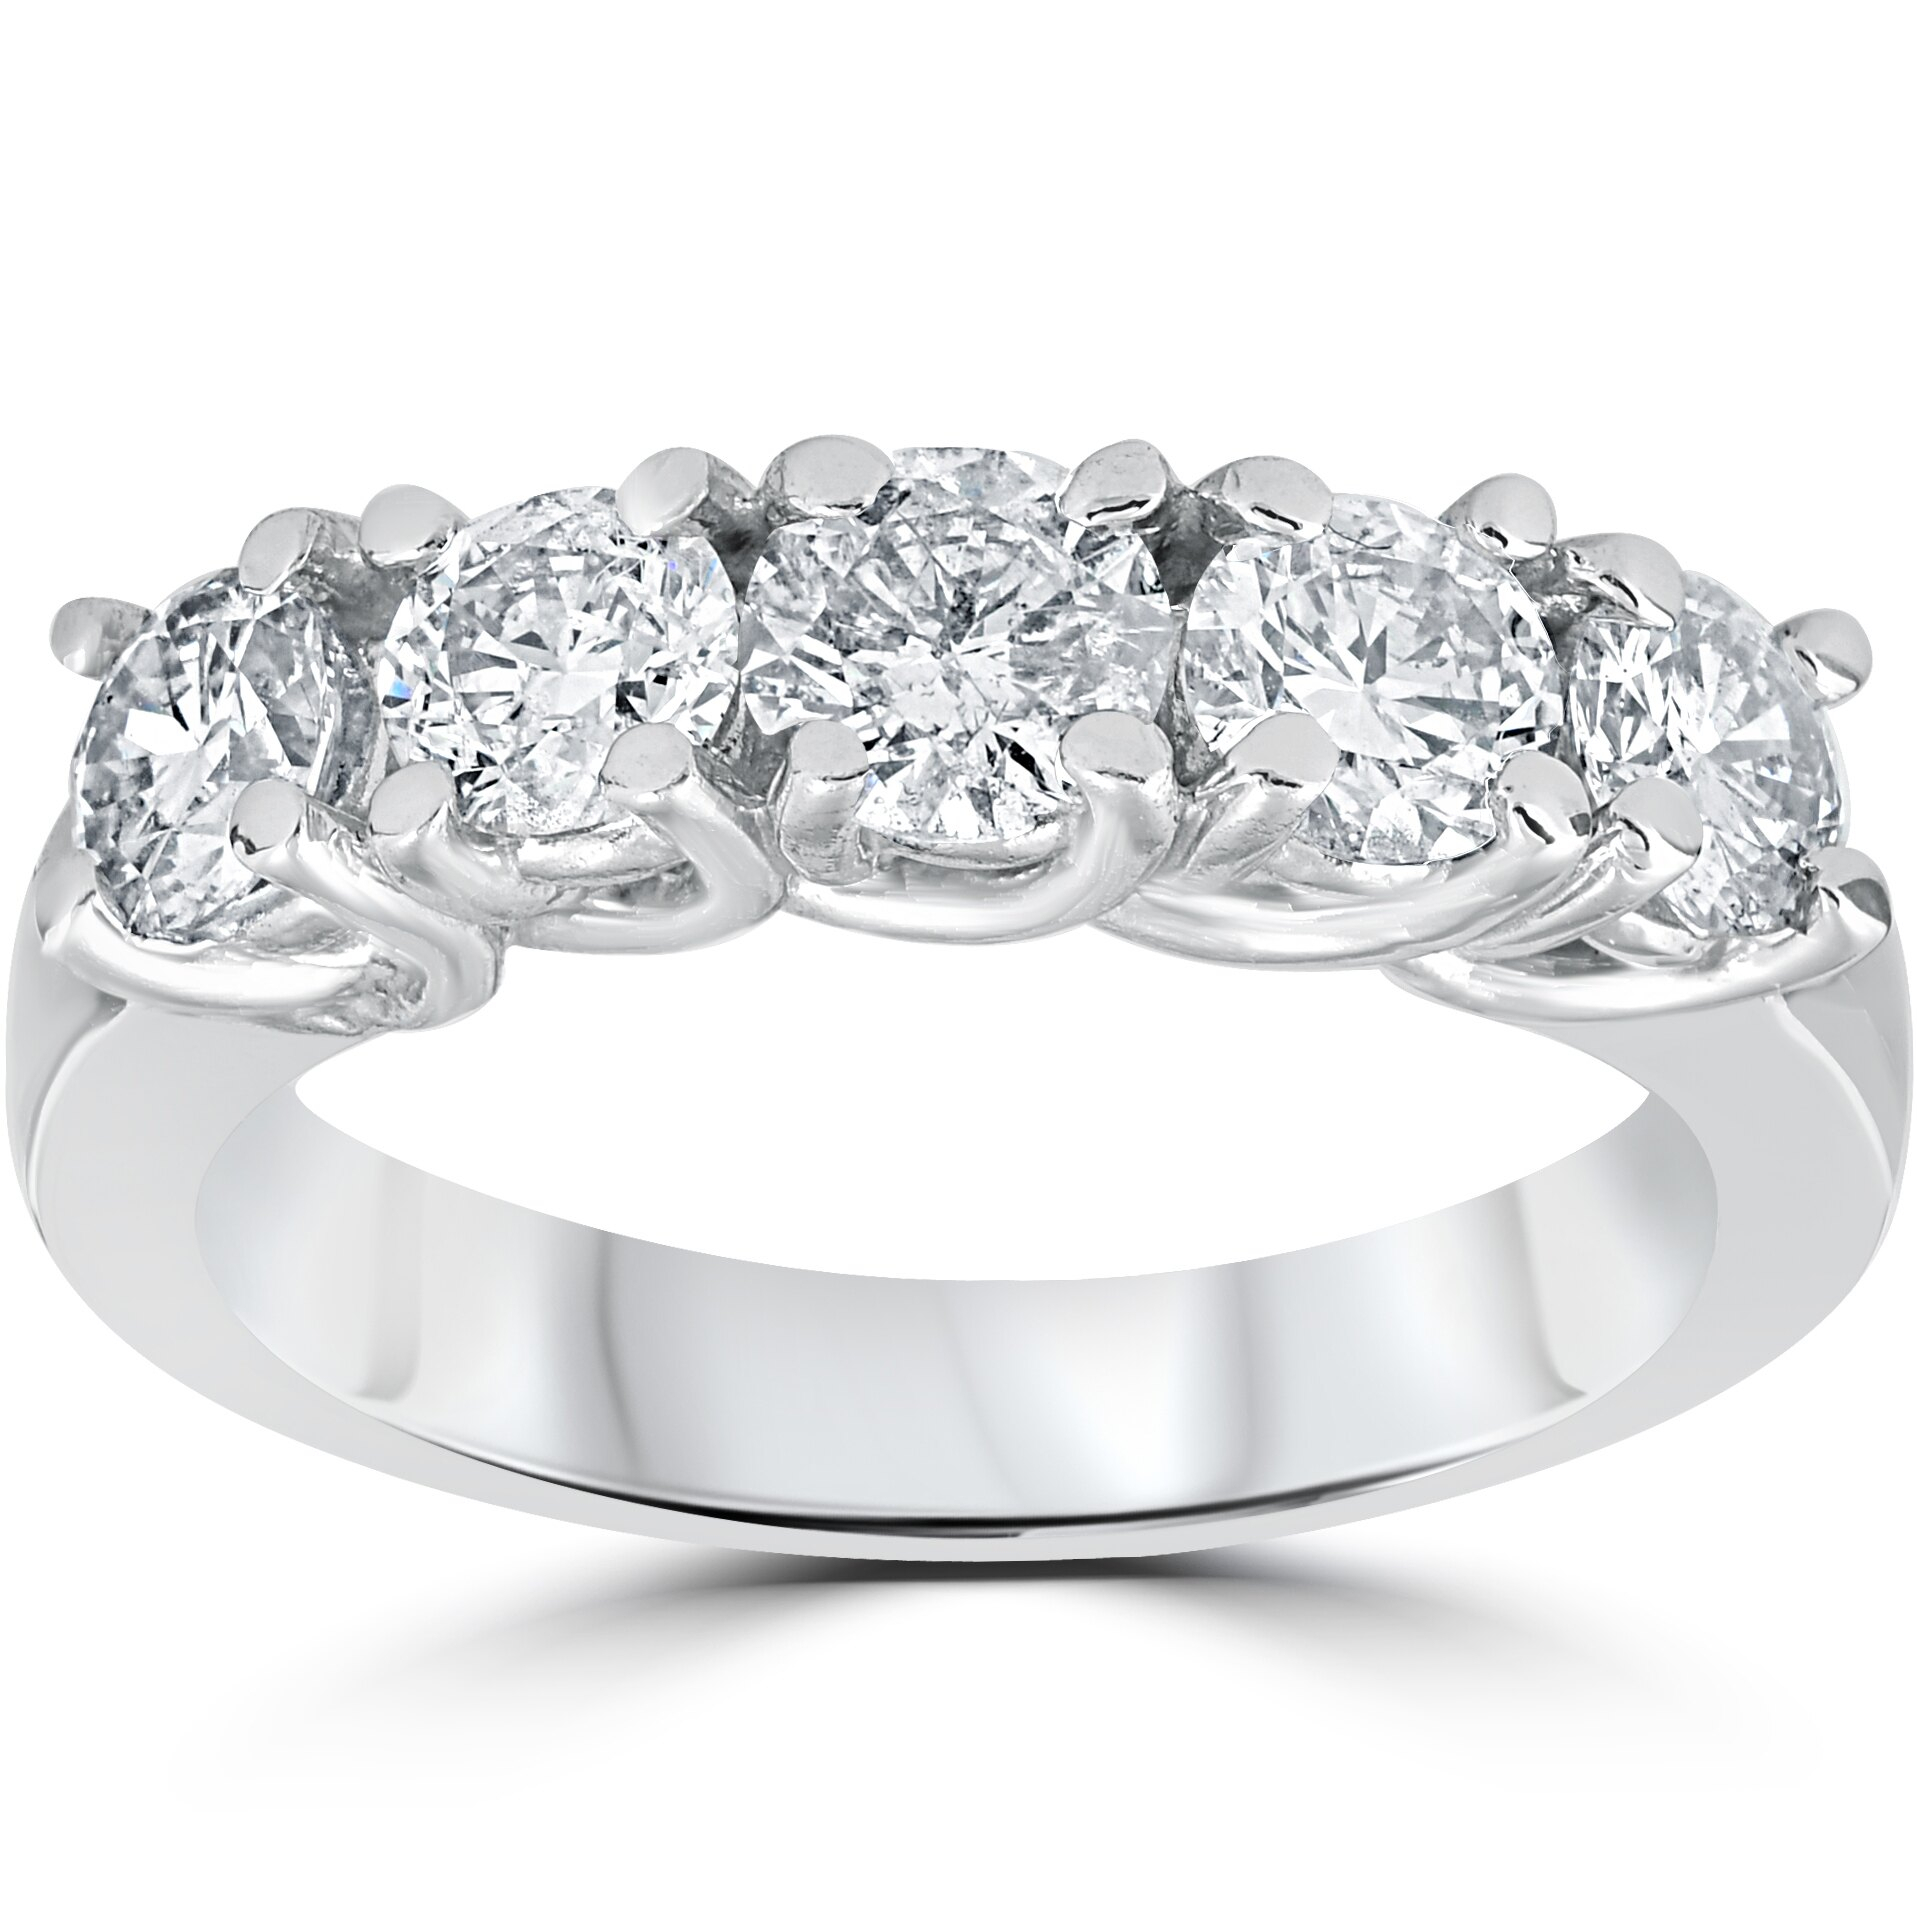 """1 1/2Ct Real Diamond Wedding Anniversary Band Womens 14K White Gold Ring For Current Diamond Seven Stone """"x"""" Anniversary Bands In Sterling Silver And Rose Gold (View 2 of 25)"""